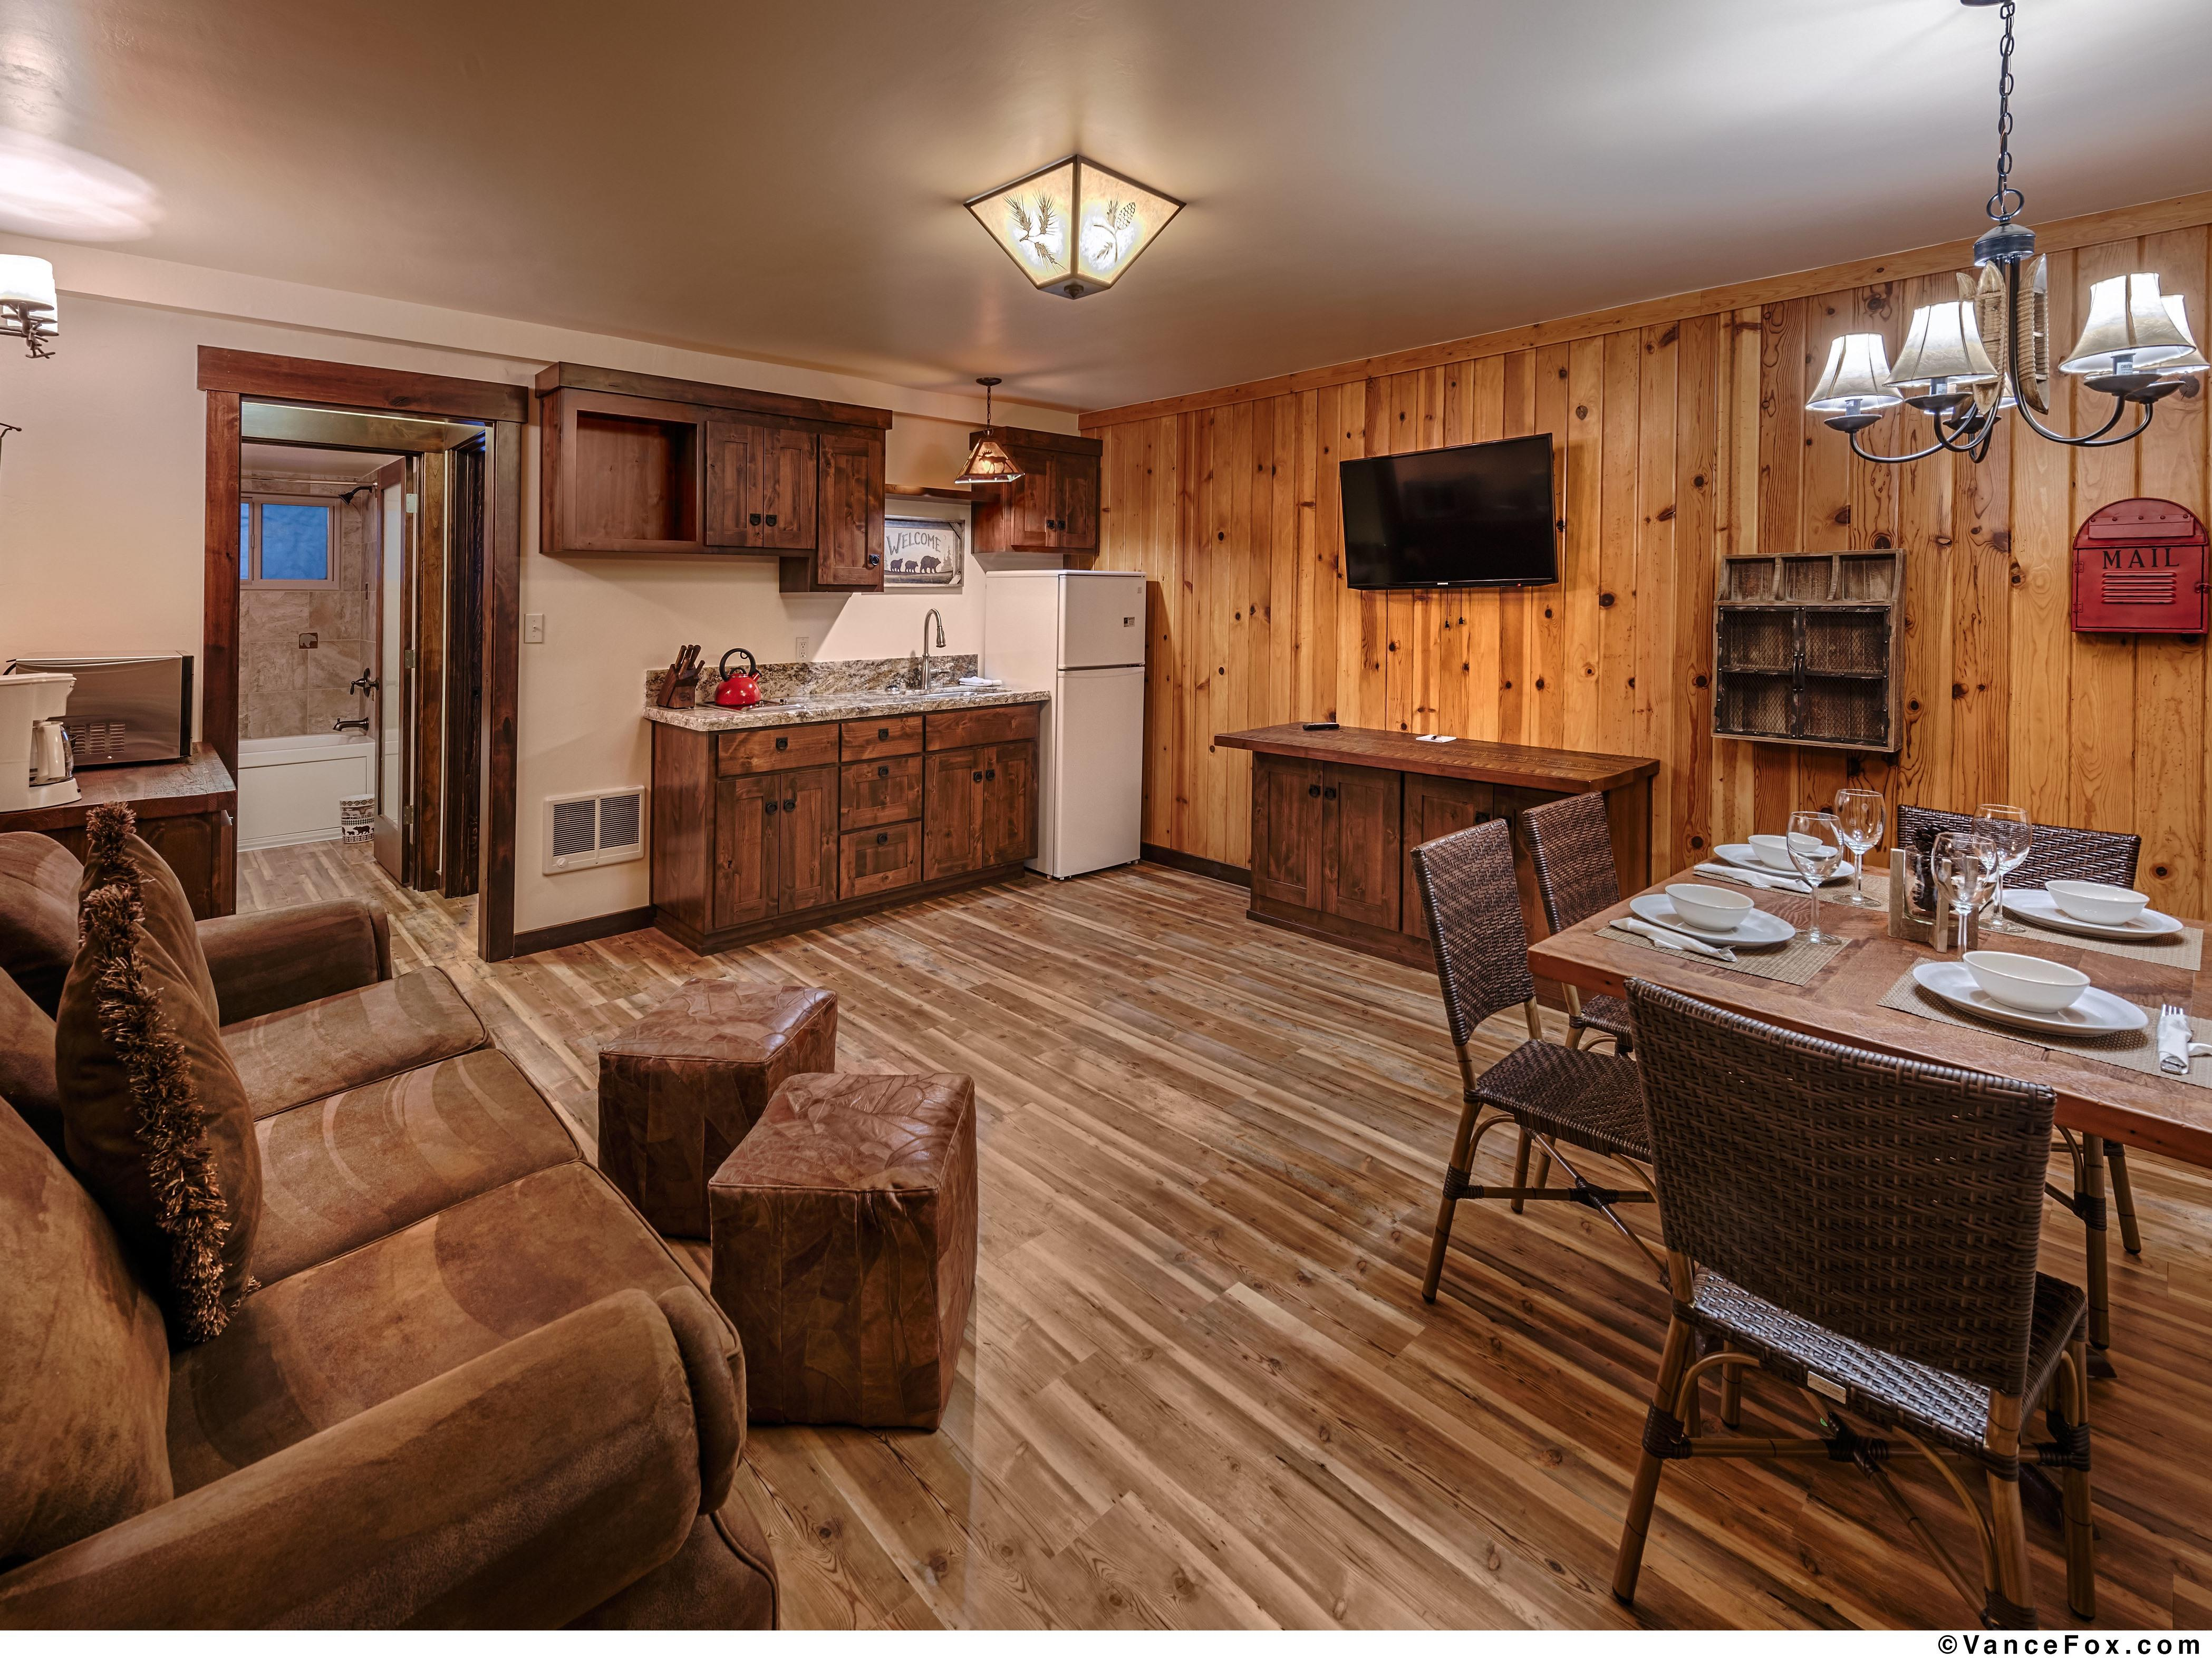 Lake View Two Bedroom #22-Lodge-Ensuite with Jet bath-Large-Lake View - Base Rate